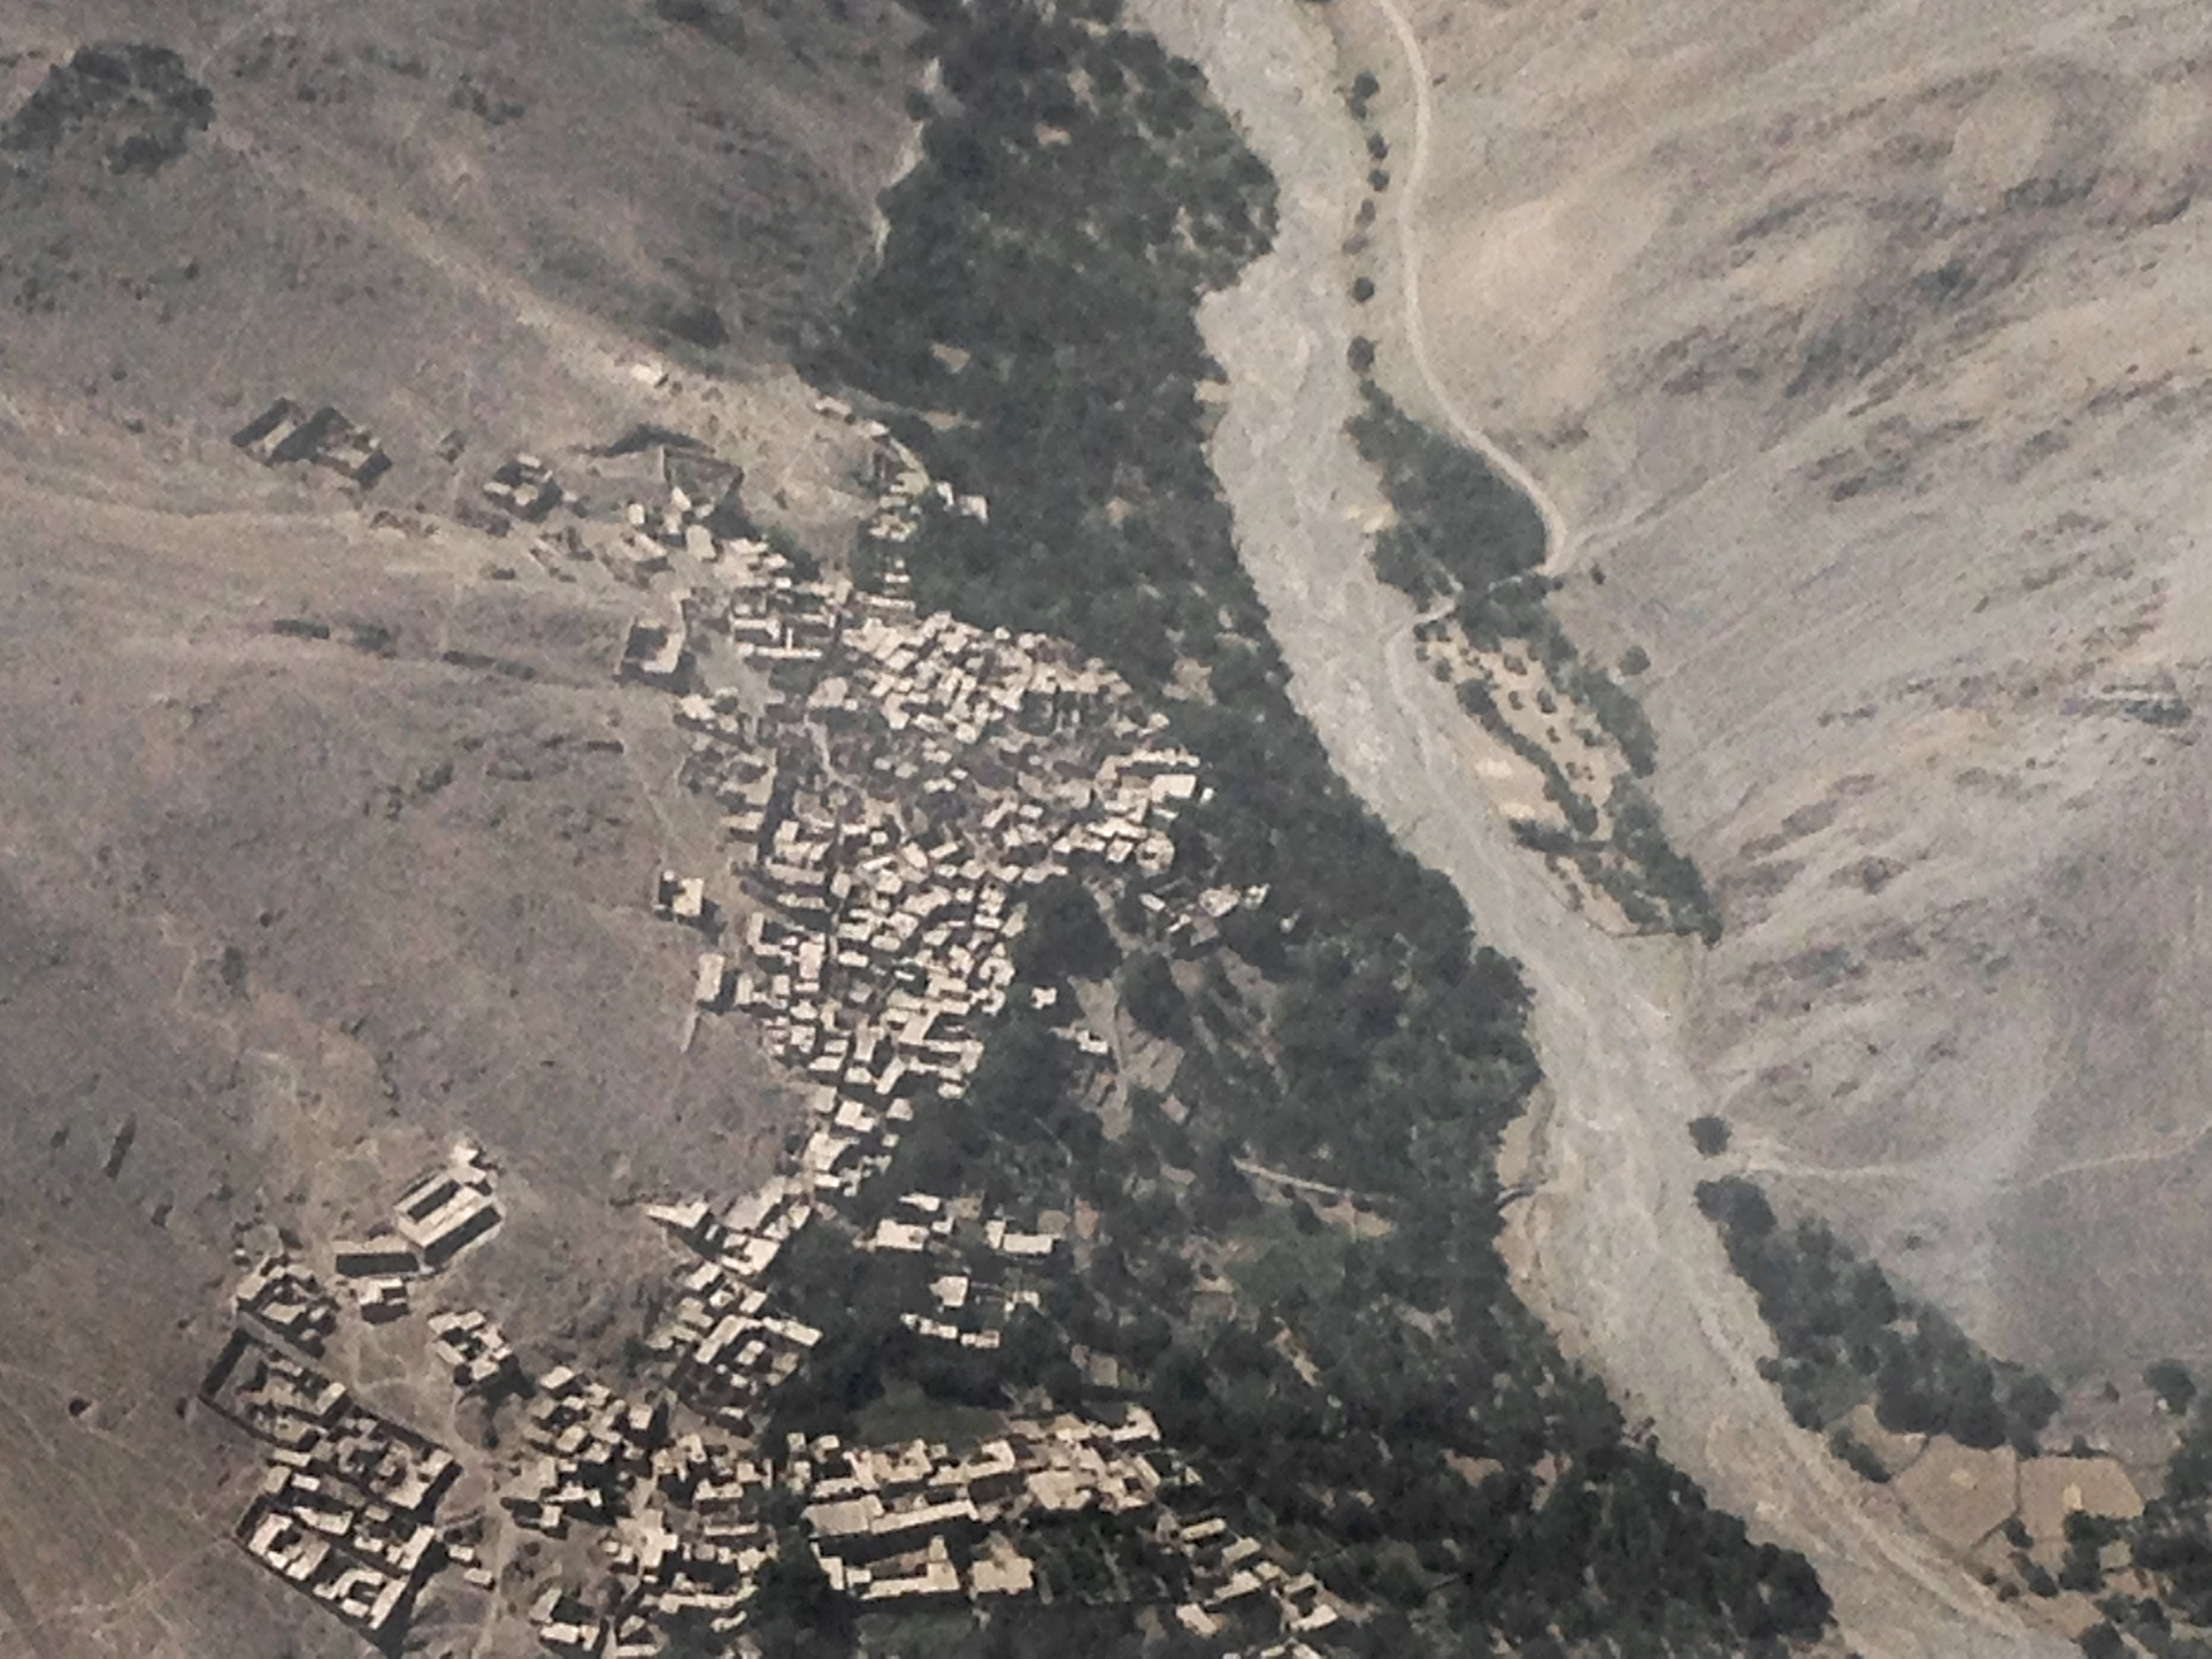 Image 1  Aerial view of village clusters in central Afghanistan, 2016. Photograph by Safira Lakhani